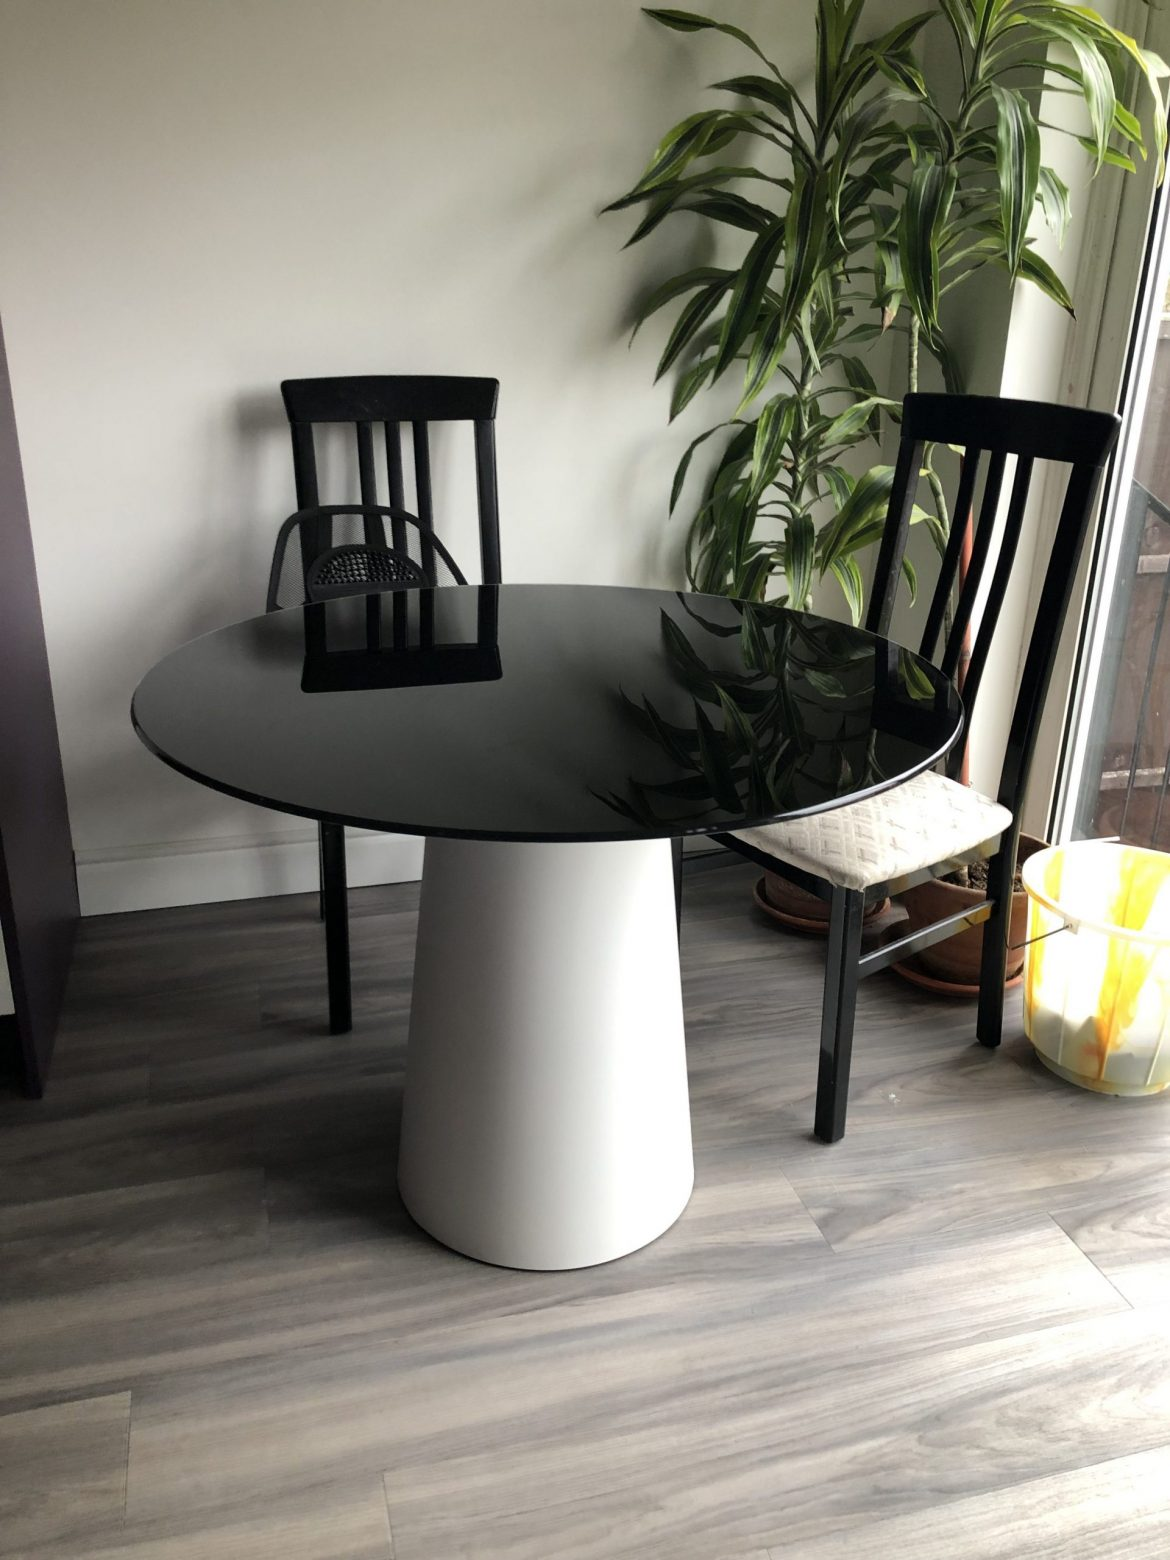 Totem Black and White Dining Table